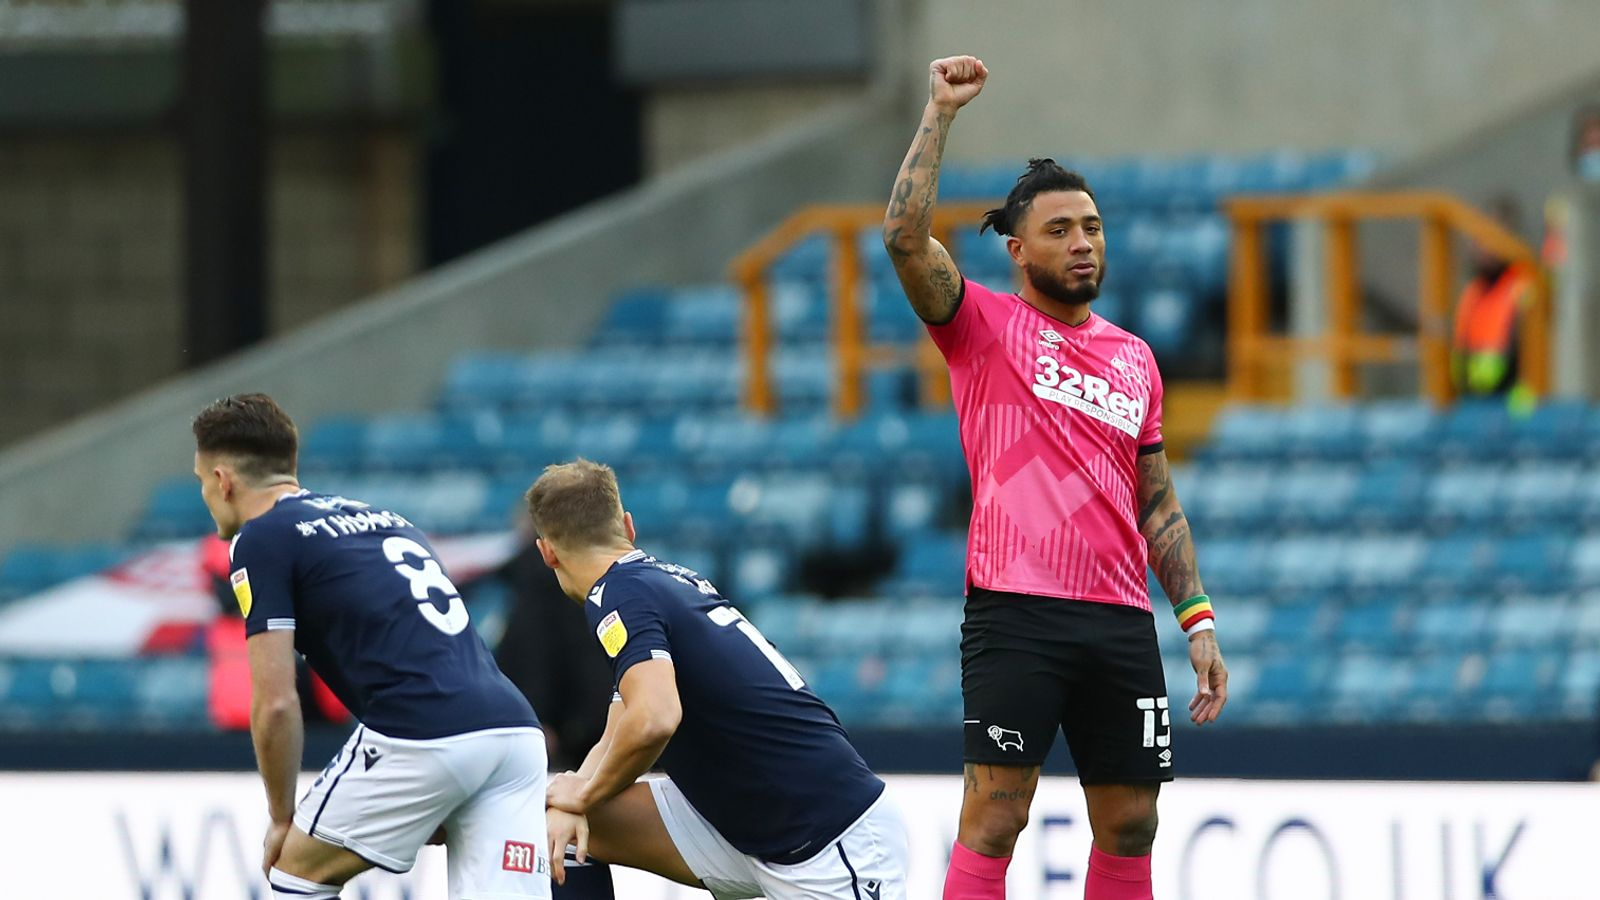 news.sky.com: Millwall players to link arms with opponents rather than take a knee